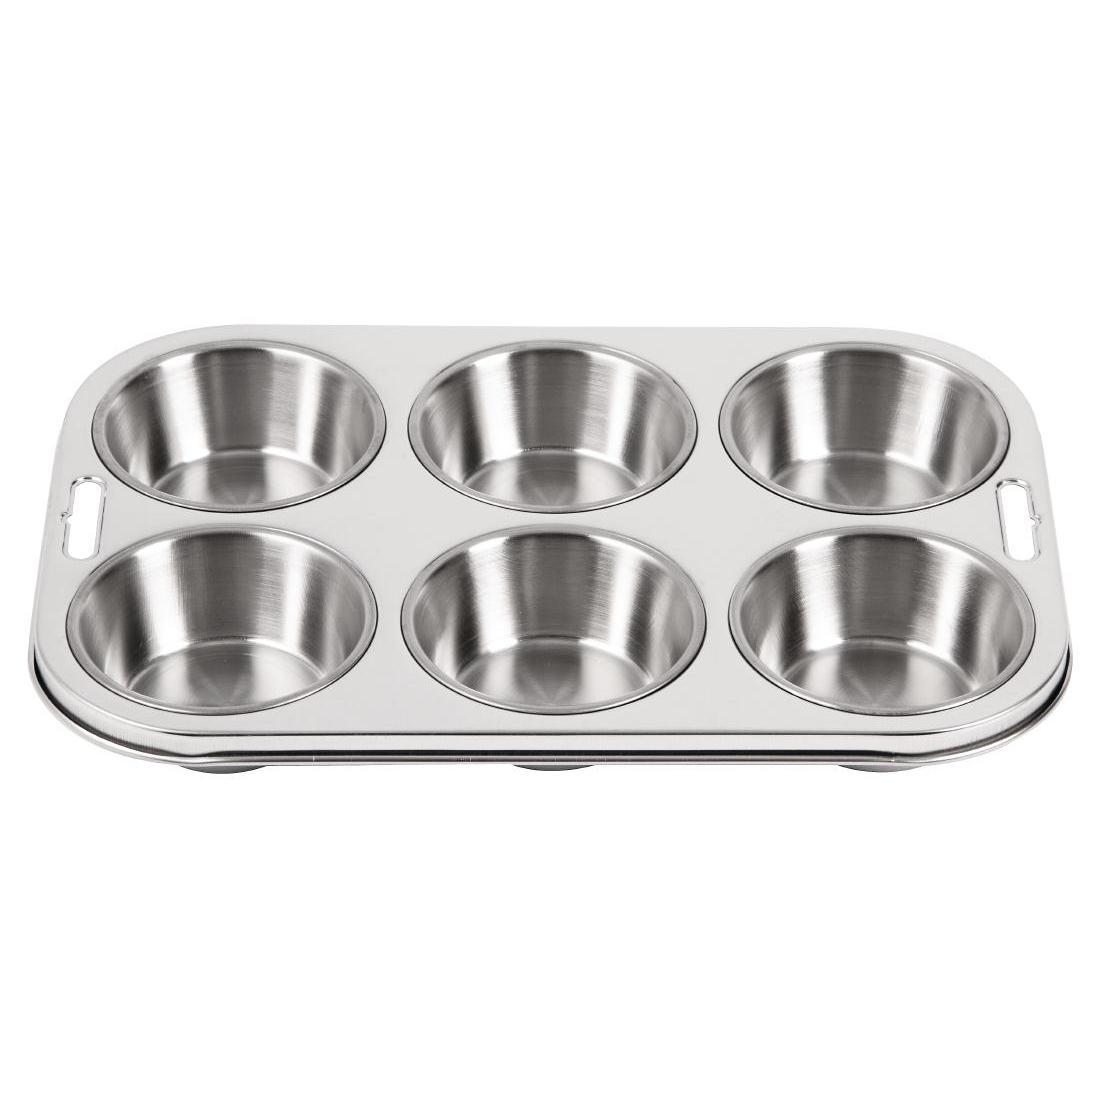 Vogue Stainless Steel Deep Muffin Tray 6 Cup - Each - E714